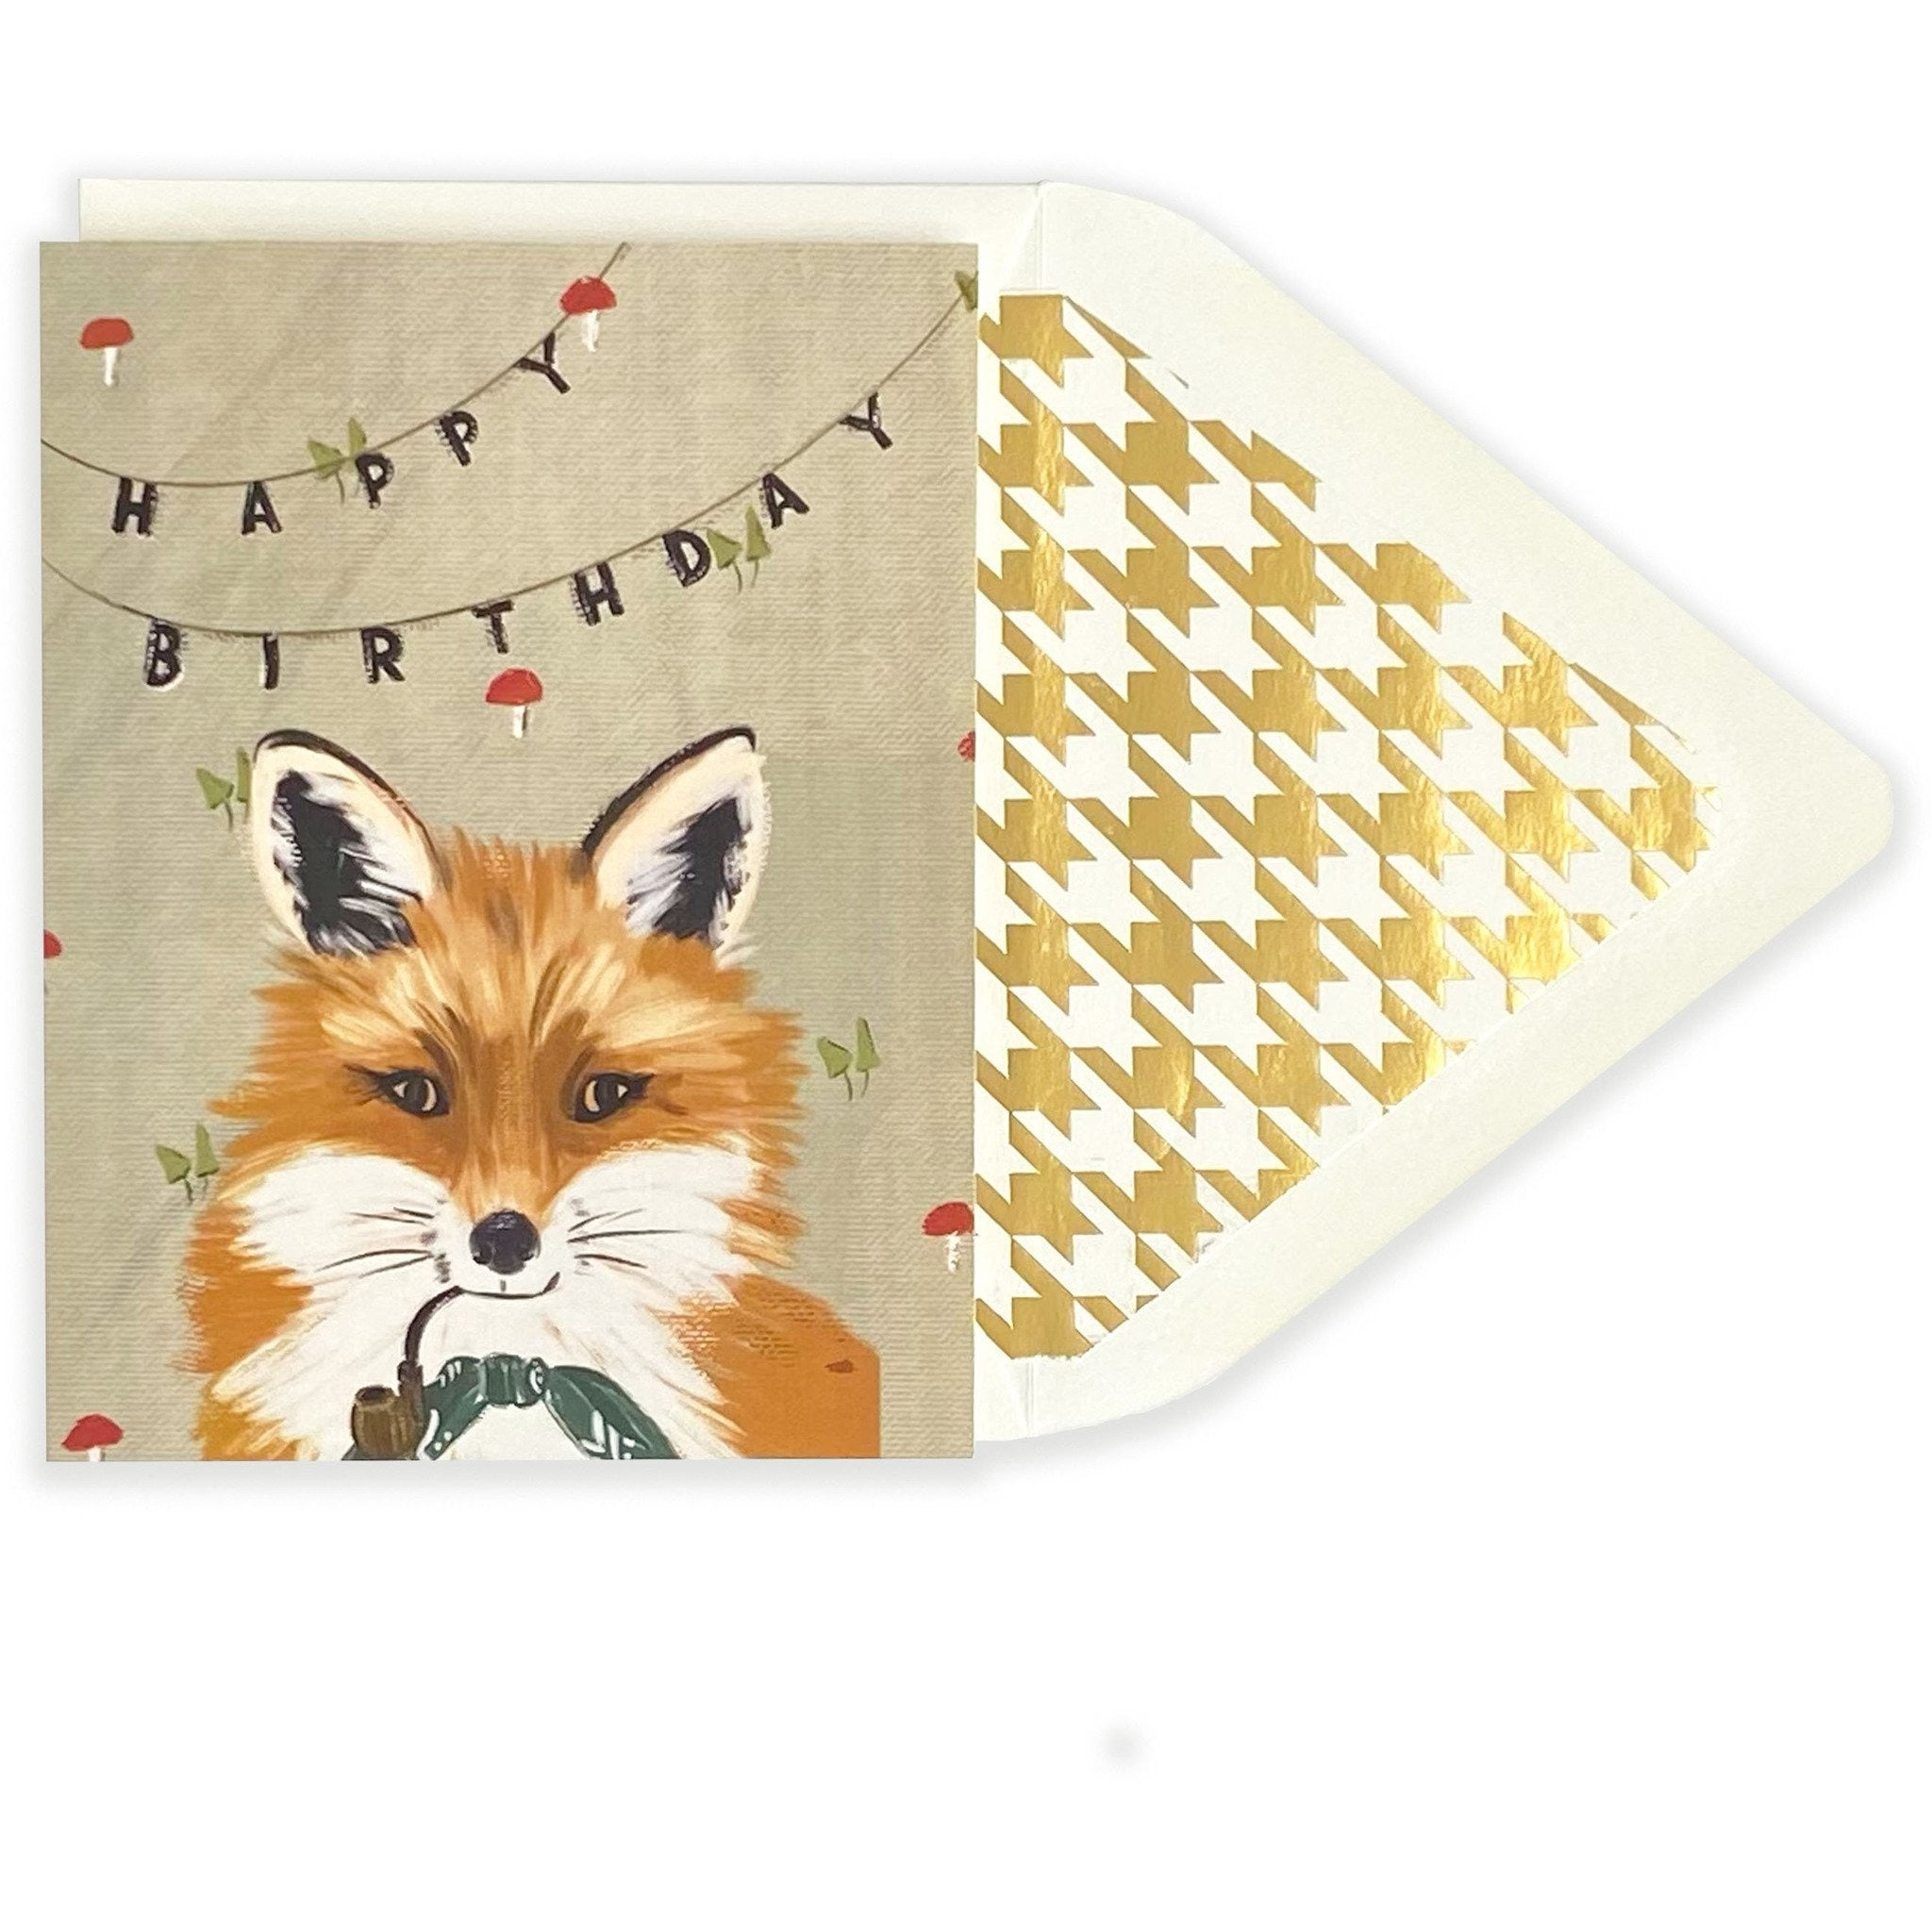 Distinguished Fox Happy Birthday Card - The First Snow